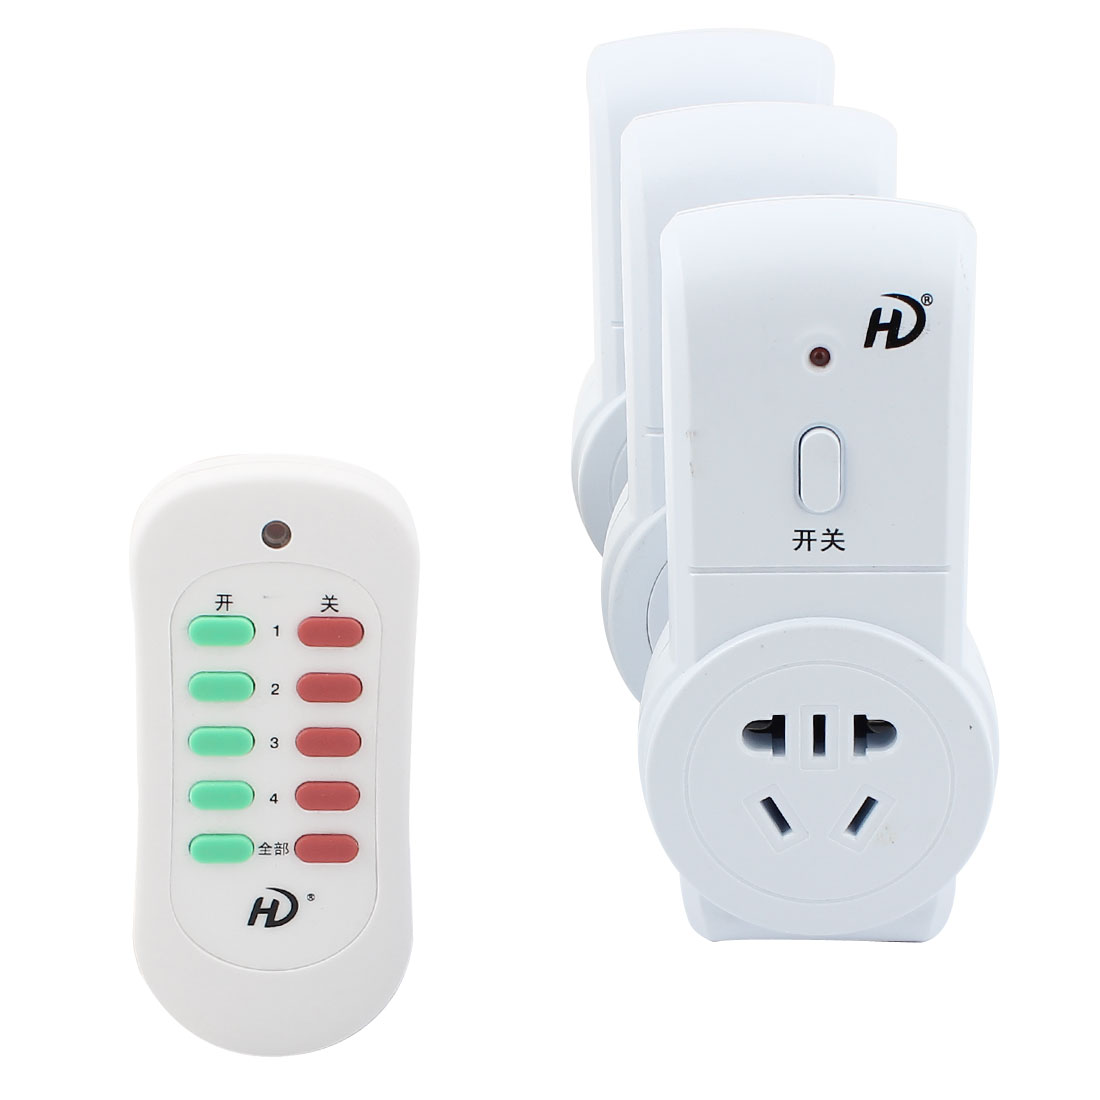 AC 220V 10A AU Plug Outlet Wireless Remote Control Socket Switch Suit